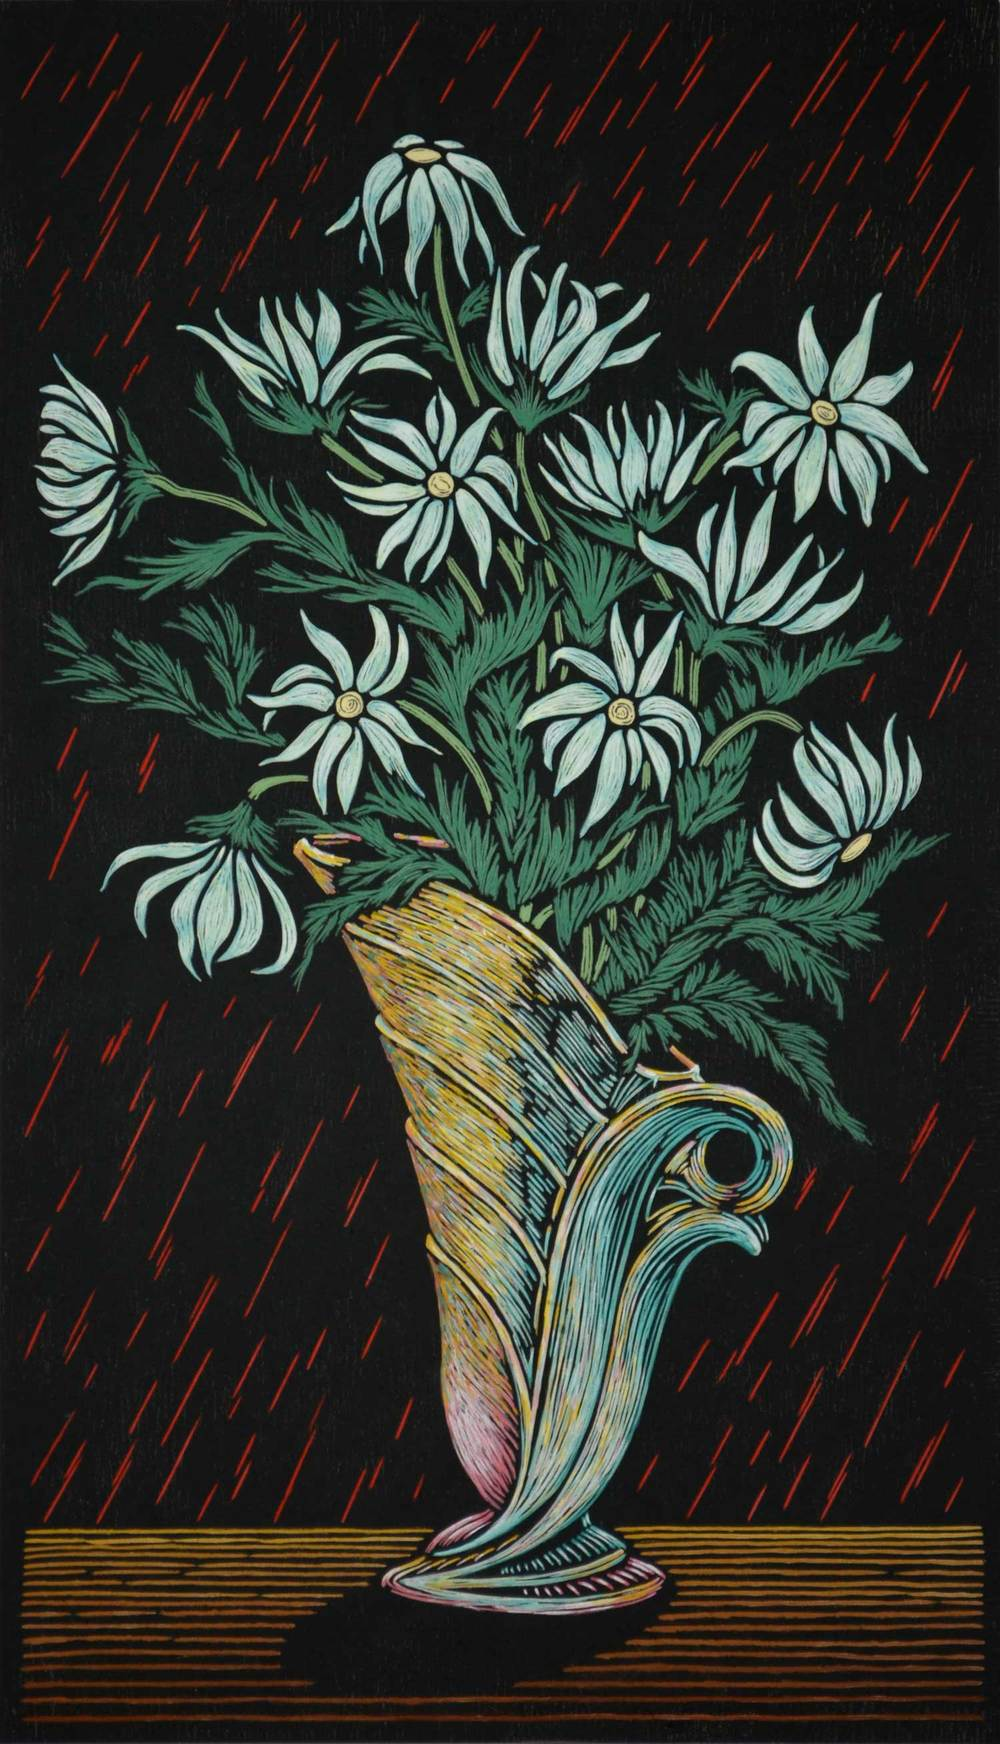 FLANNEL FLOWER IN VASE 75 X 43 CM    EDITION OF 50 HAND COLOURED LINOCUT ON HANDMADE JAPANESE PAPER $1,400